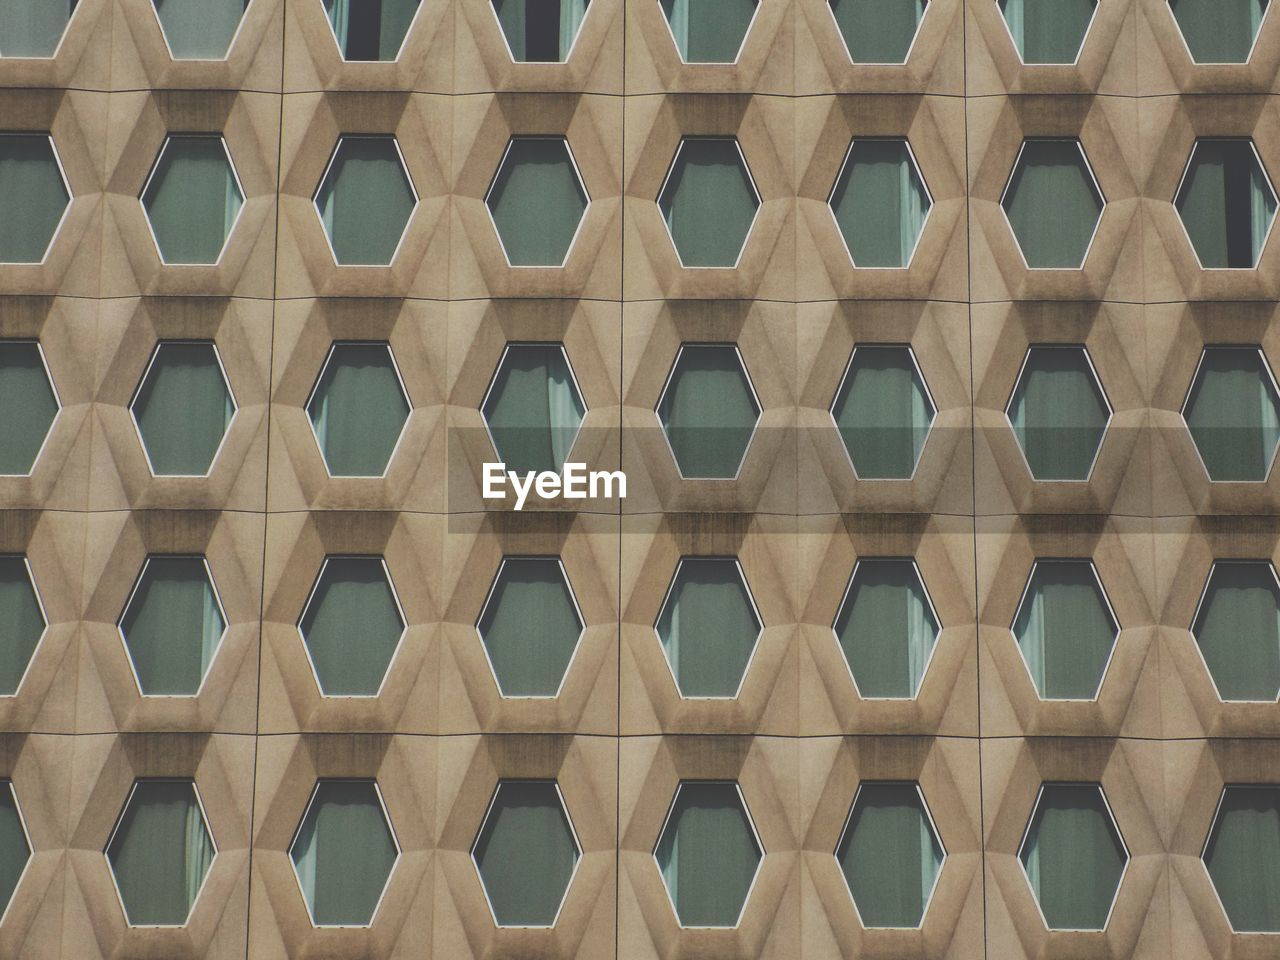 full frame, backgrounds, pattern, no people, repetition, built structure, low angle view, architecture, day, design, side by side, building exterior, geometric shape, shape, building, outdoors, sunlight, in a row, architectural feature, close-up